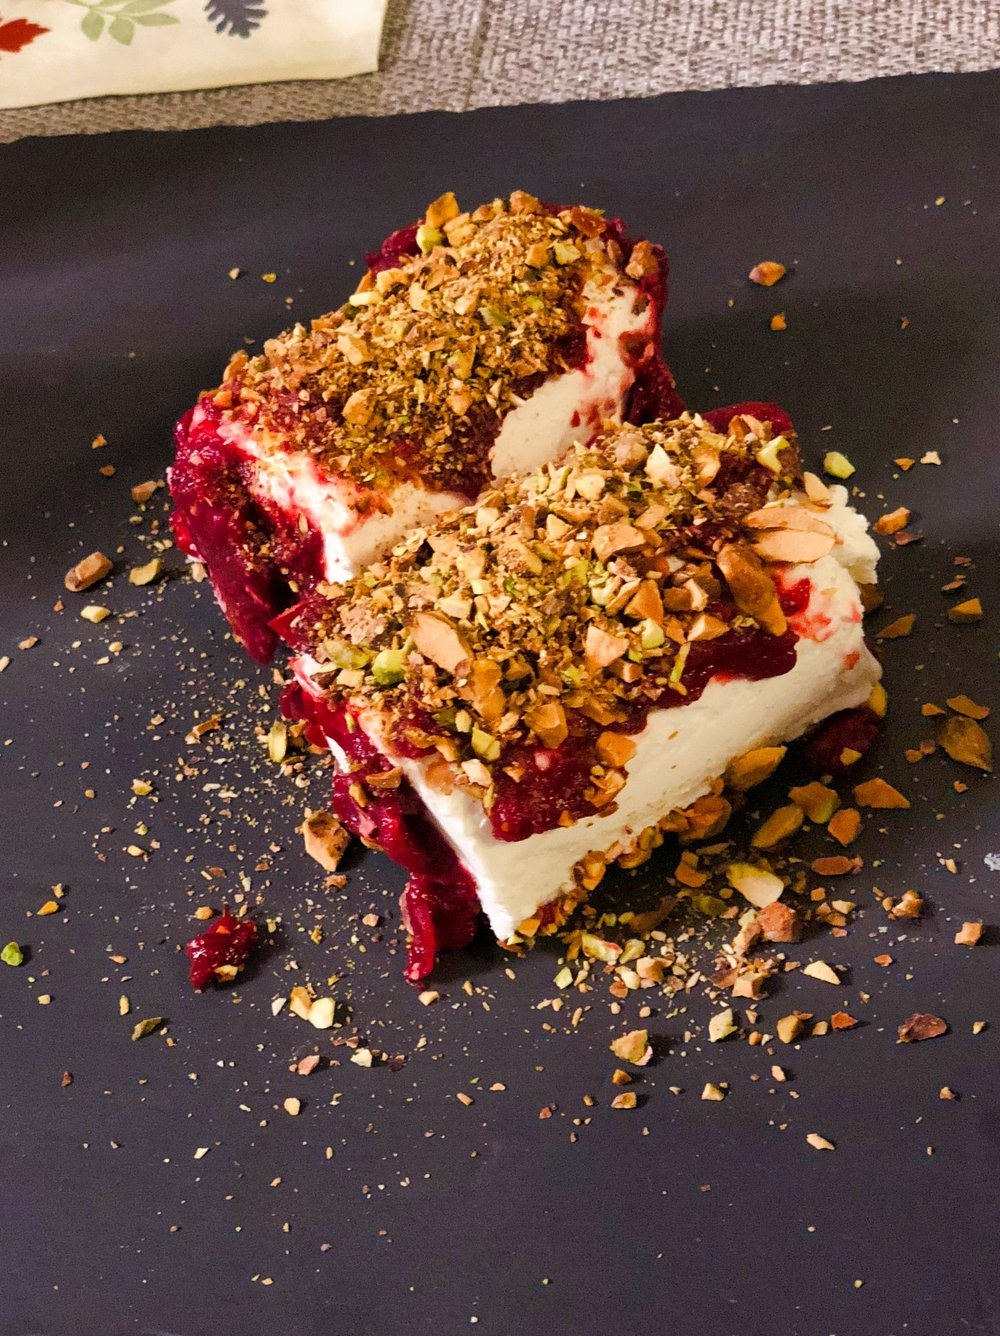 goat cheese with pistachio and cranberry jam